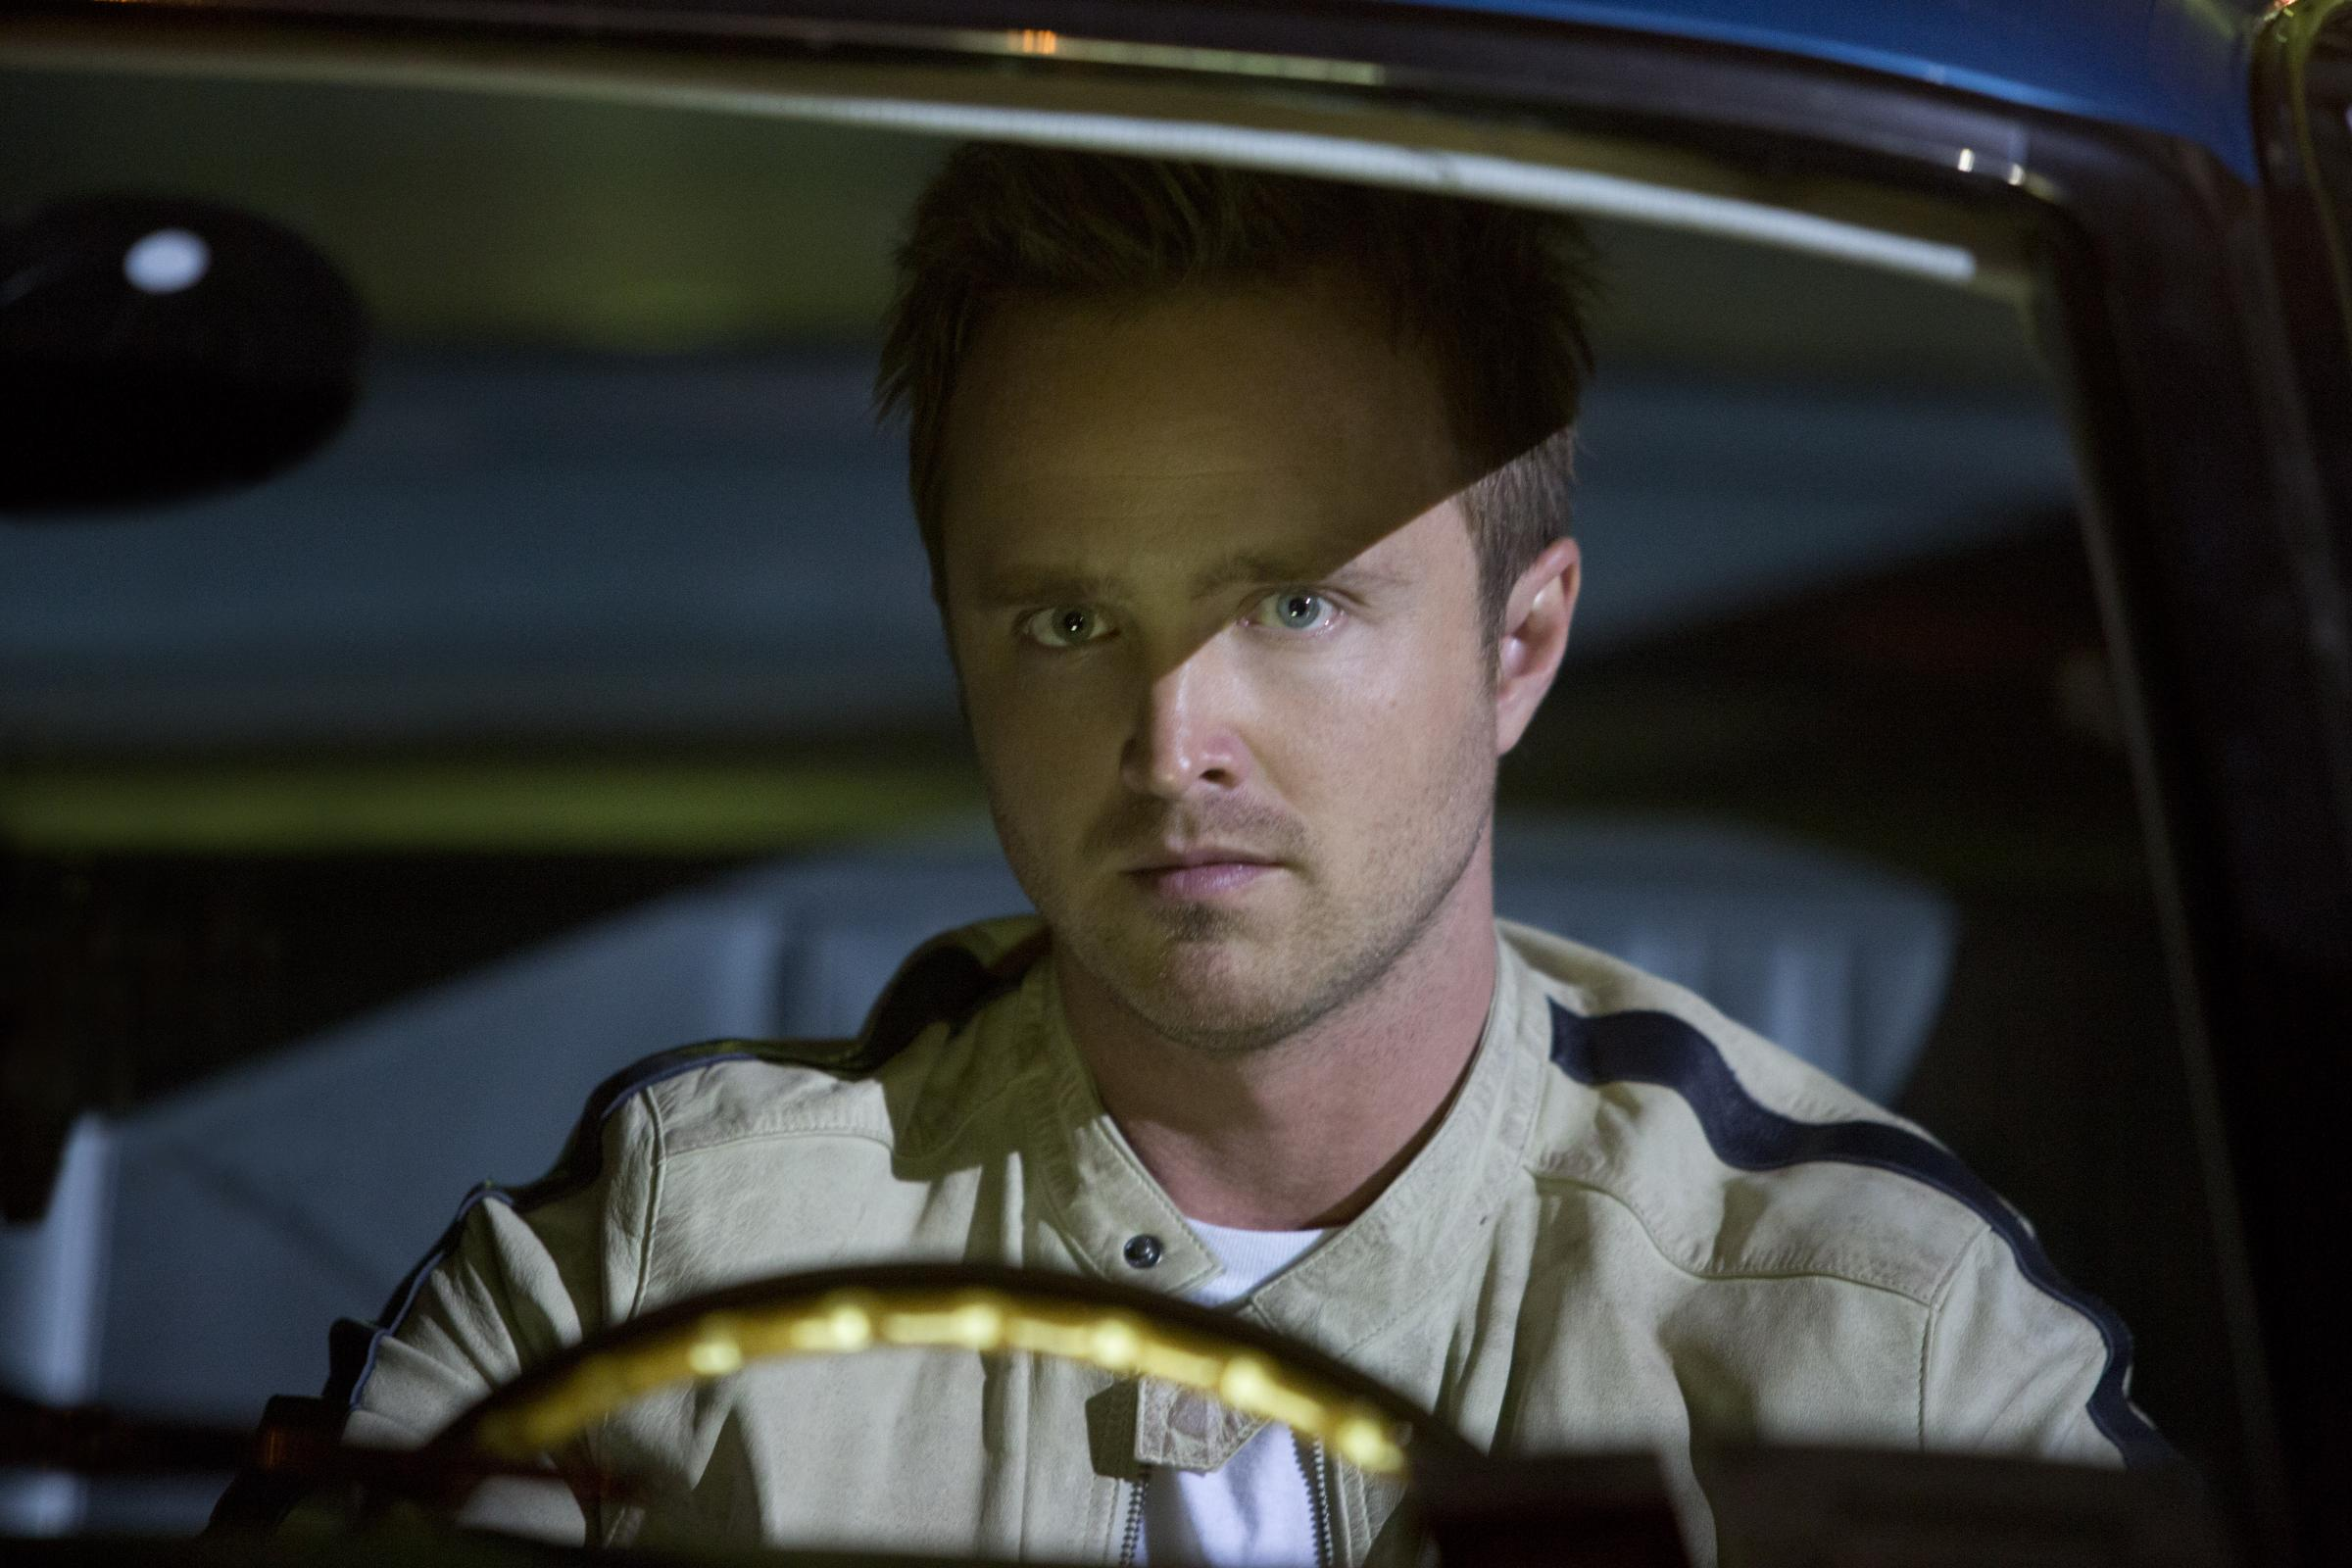 Breaking Bad's Aaron Paul talks to News Shopper about new film Need for Speed